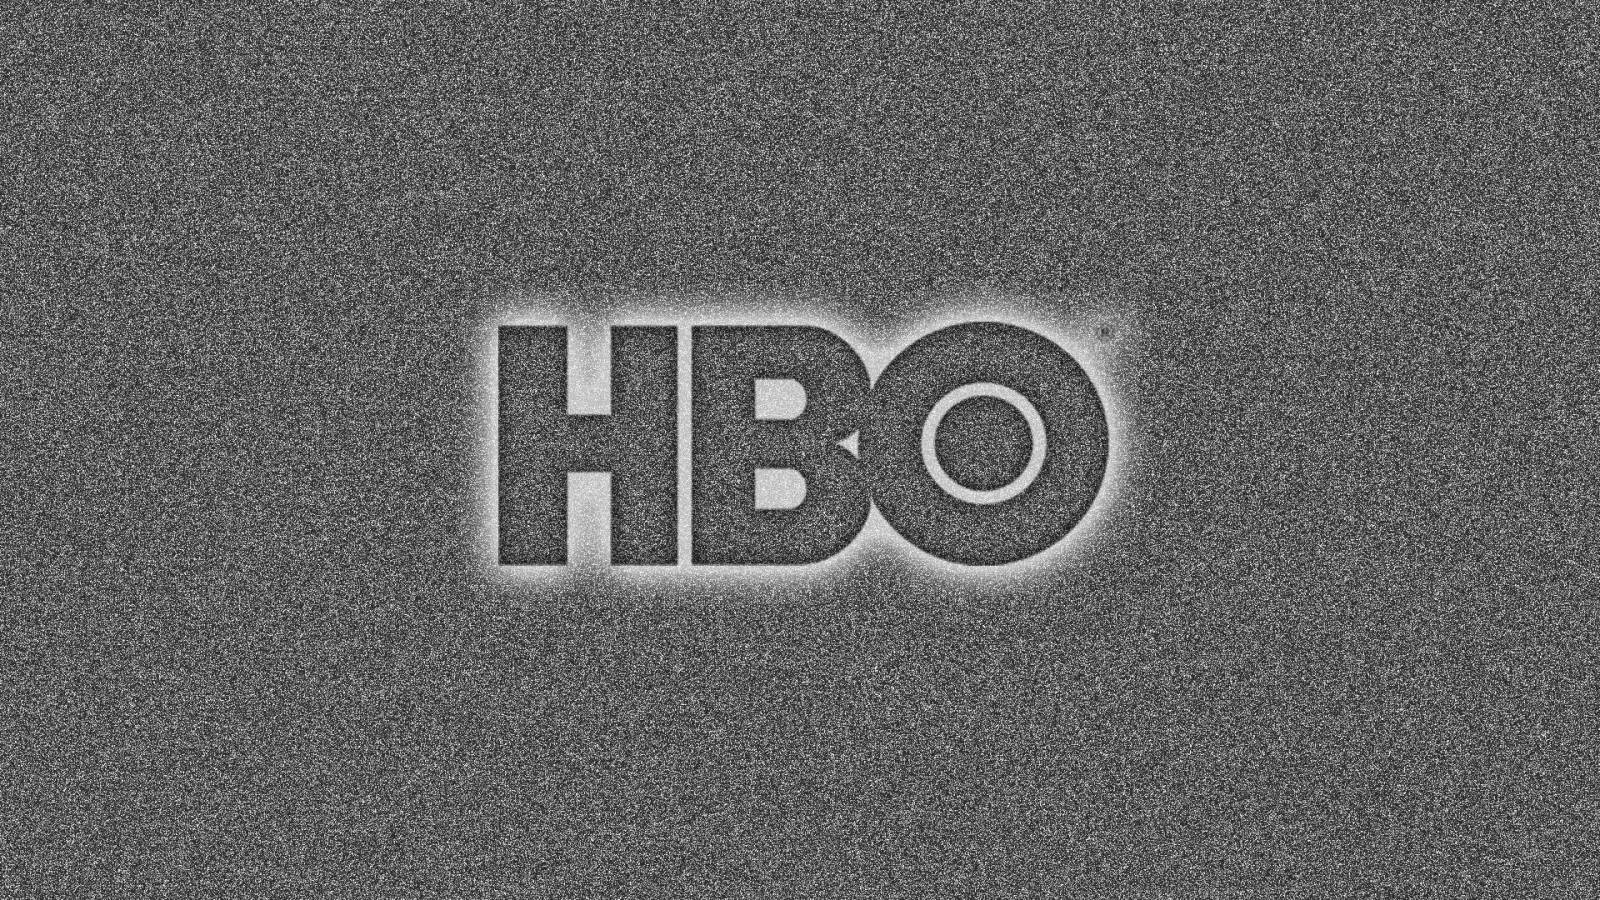 HBO download